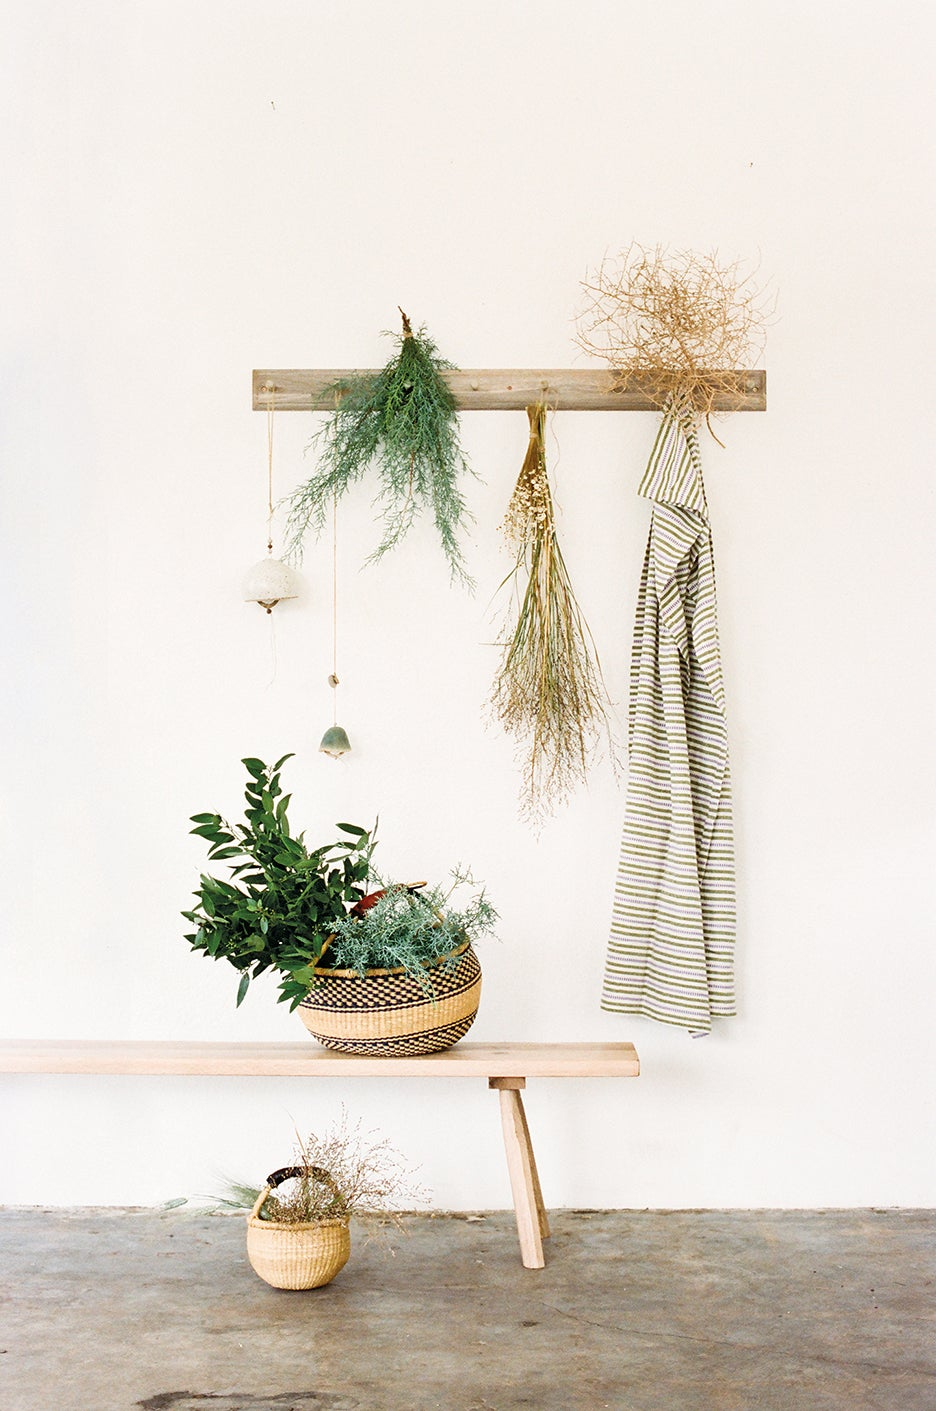 Hanging dried flowers and greenery.